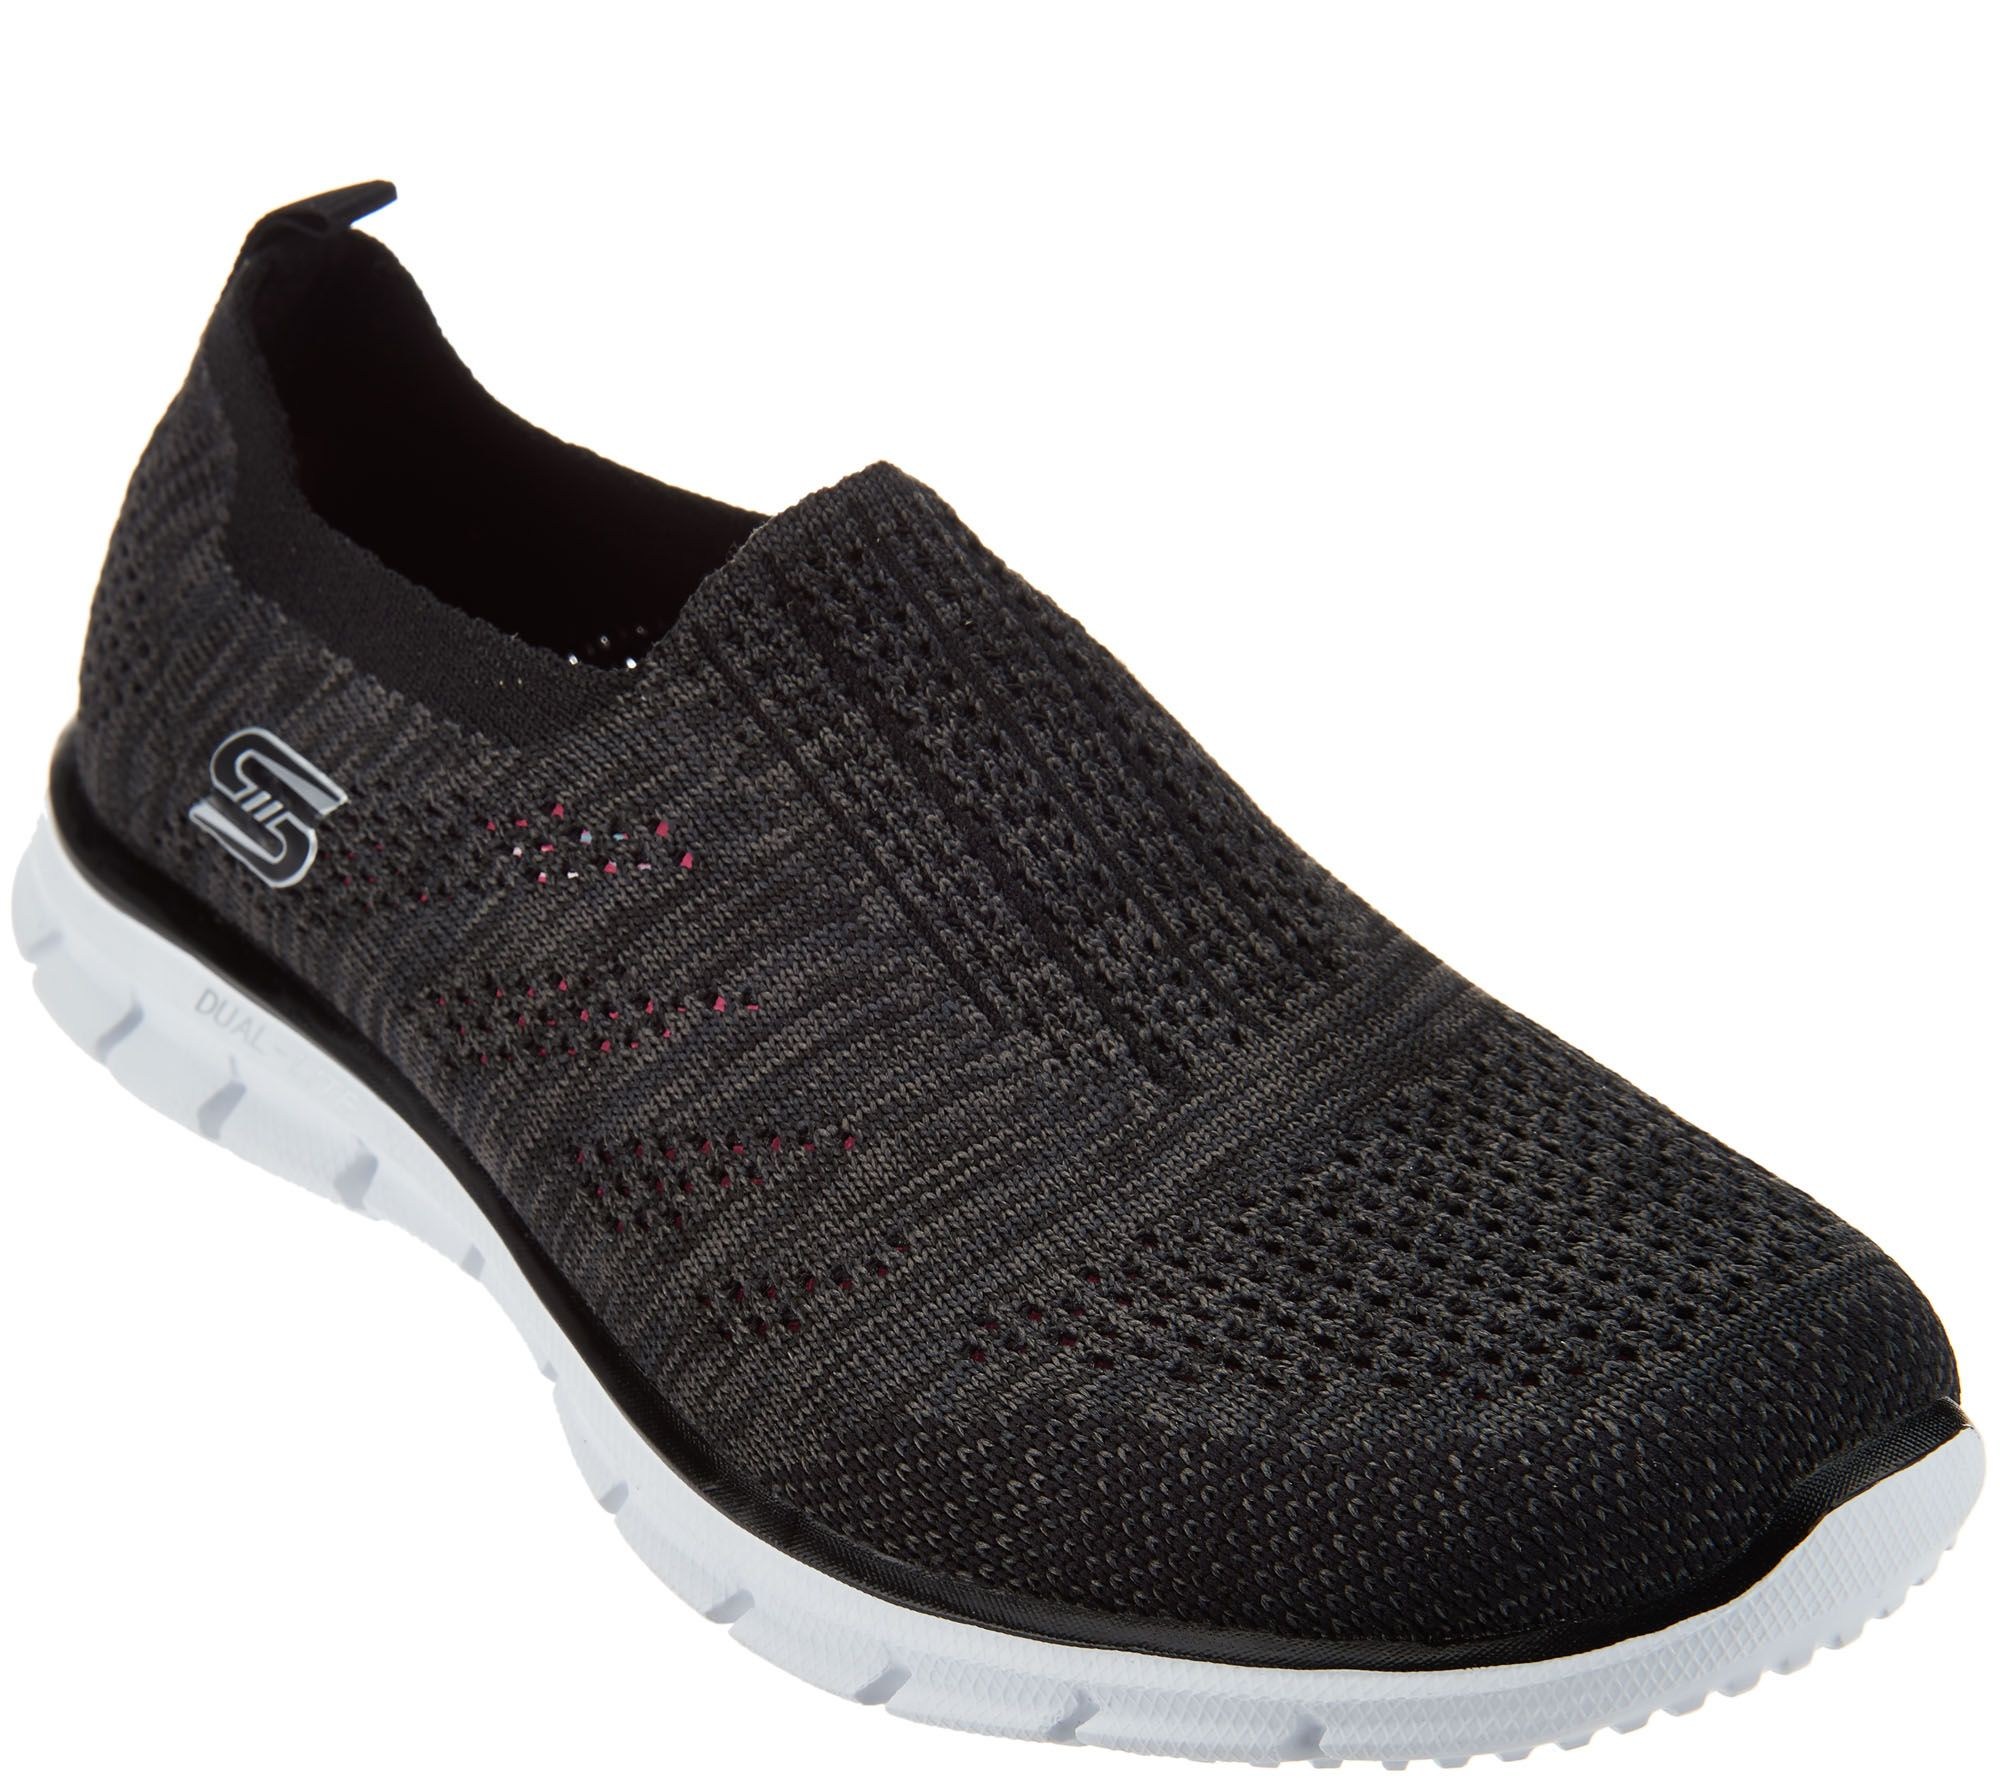 Skechers Men S Fashion Sneakers